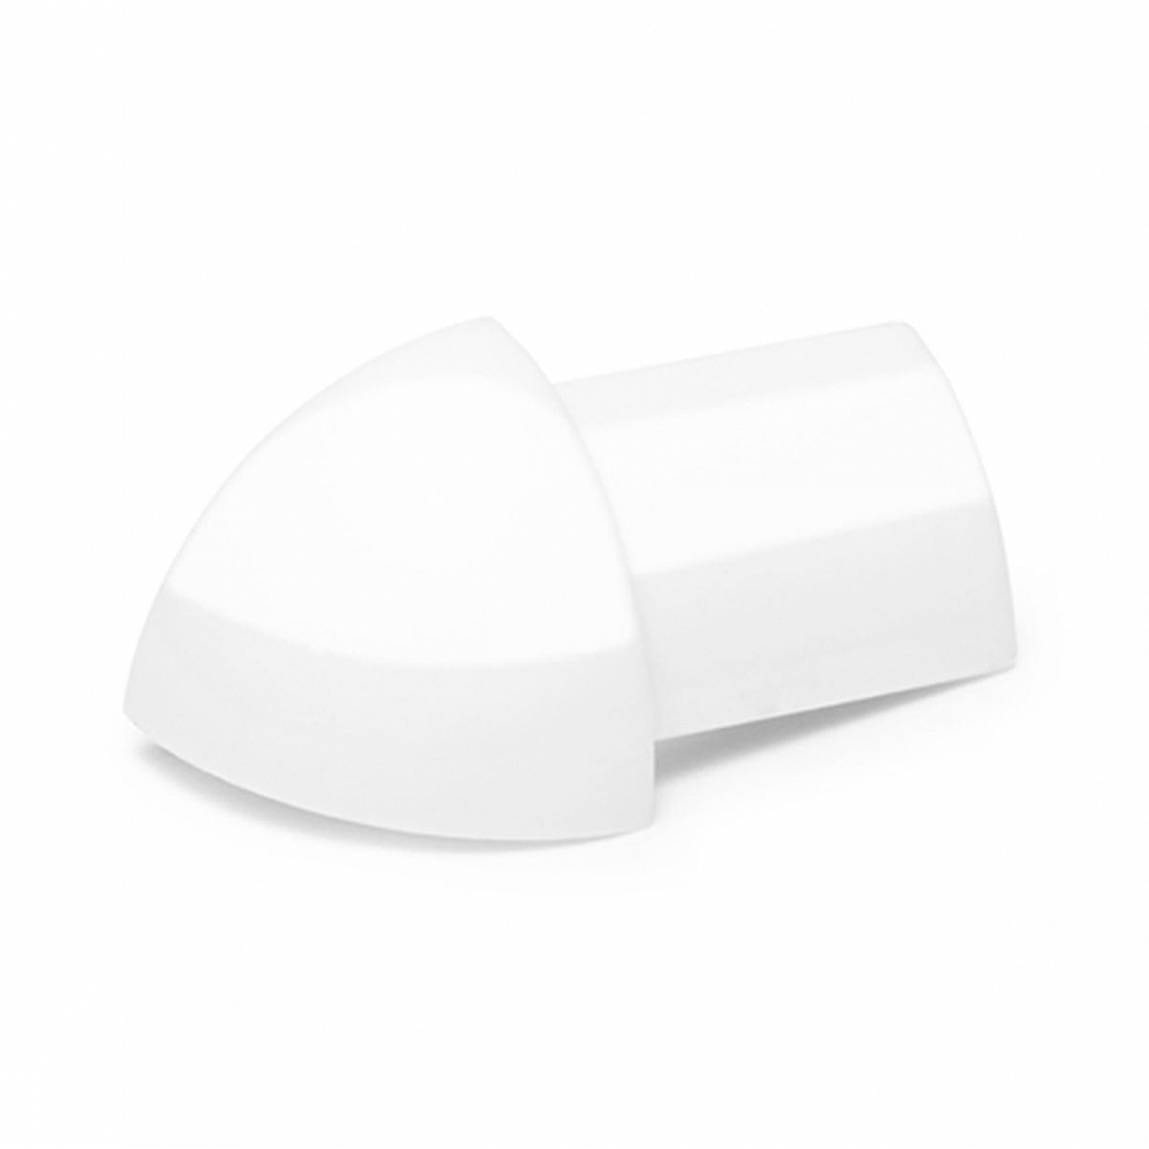 PVC Super Gloss White Tile Trim Corners (Pack of 2)